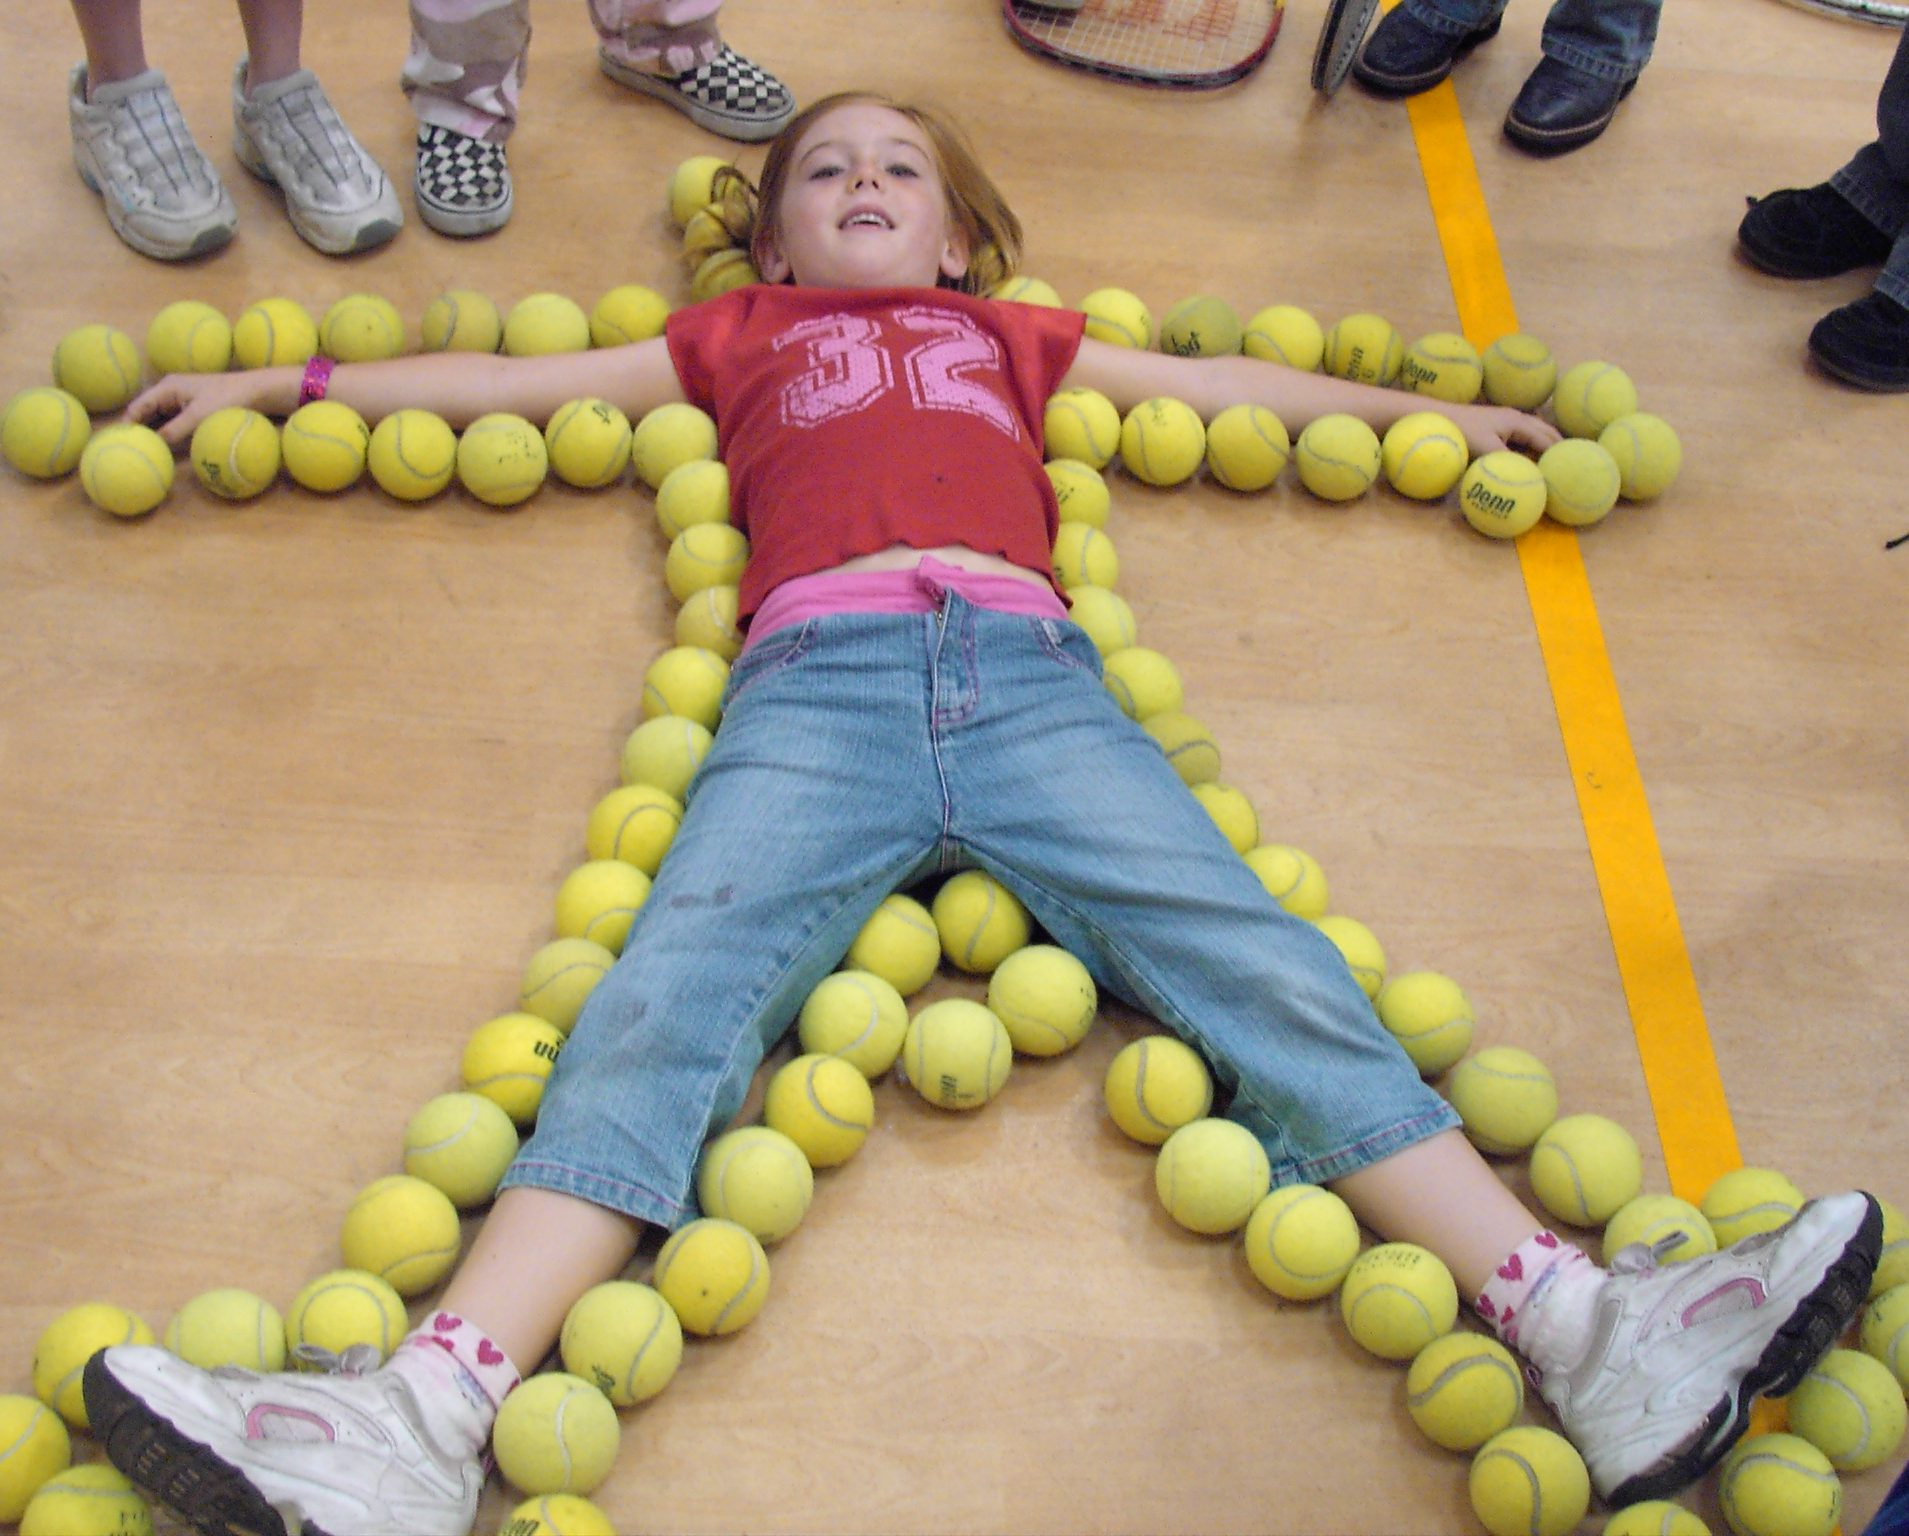 Girl lying flat with arms and legs spread out on floor outlined with tennis balls